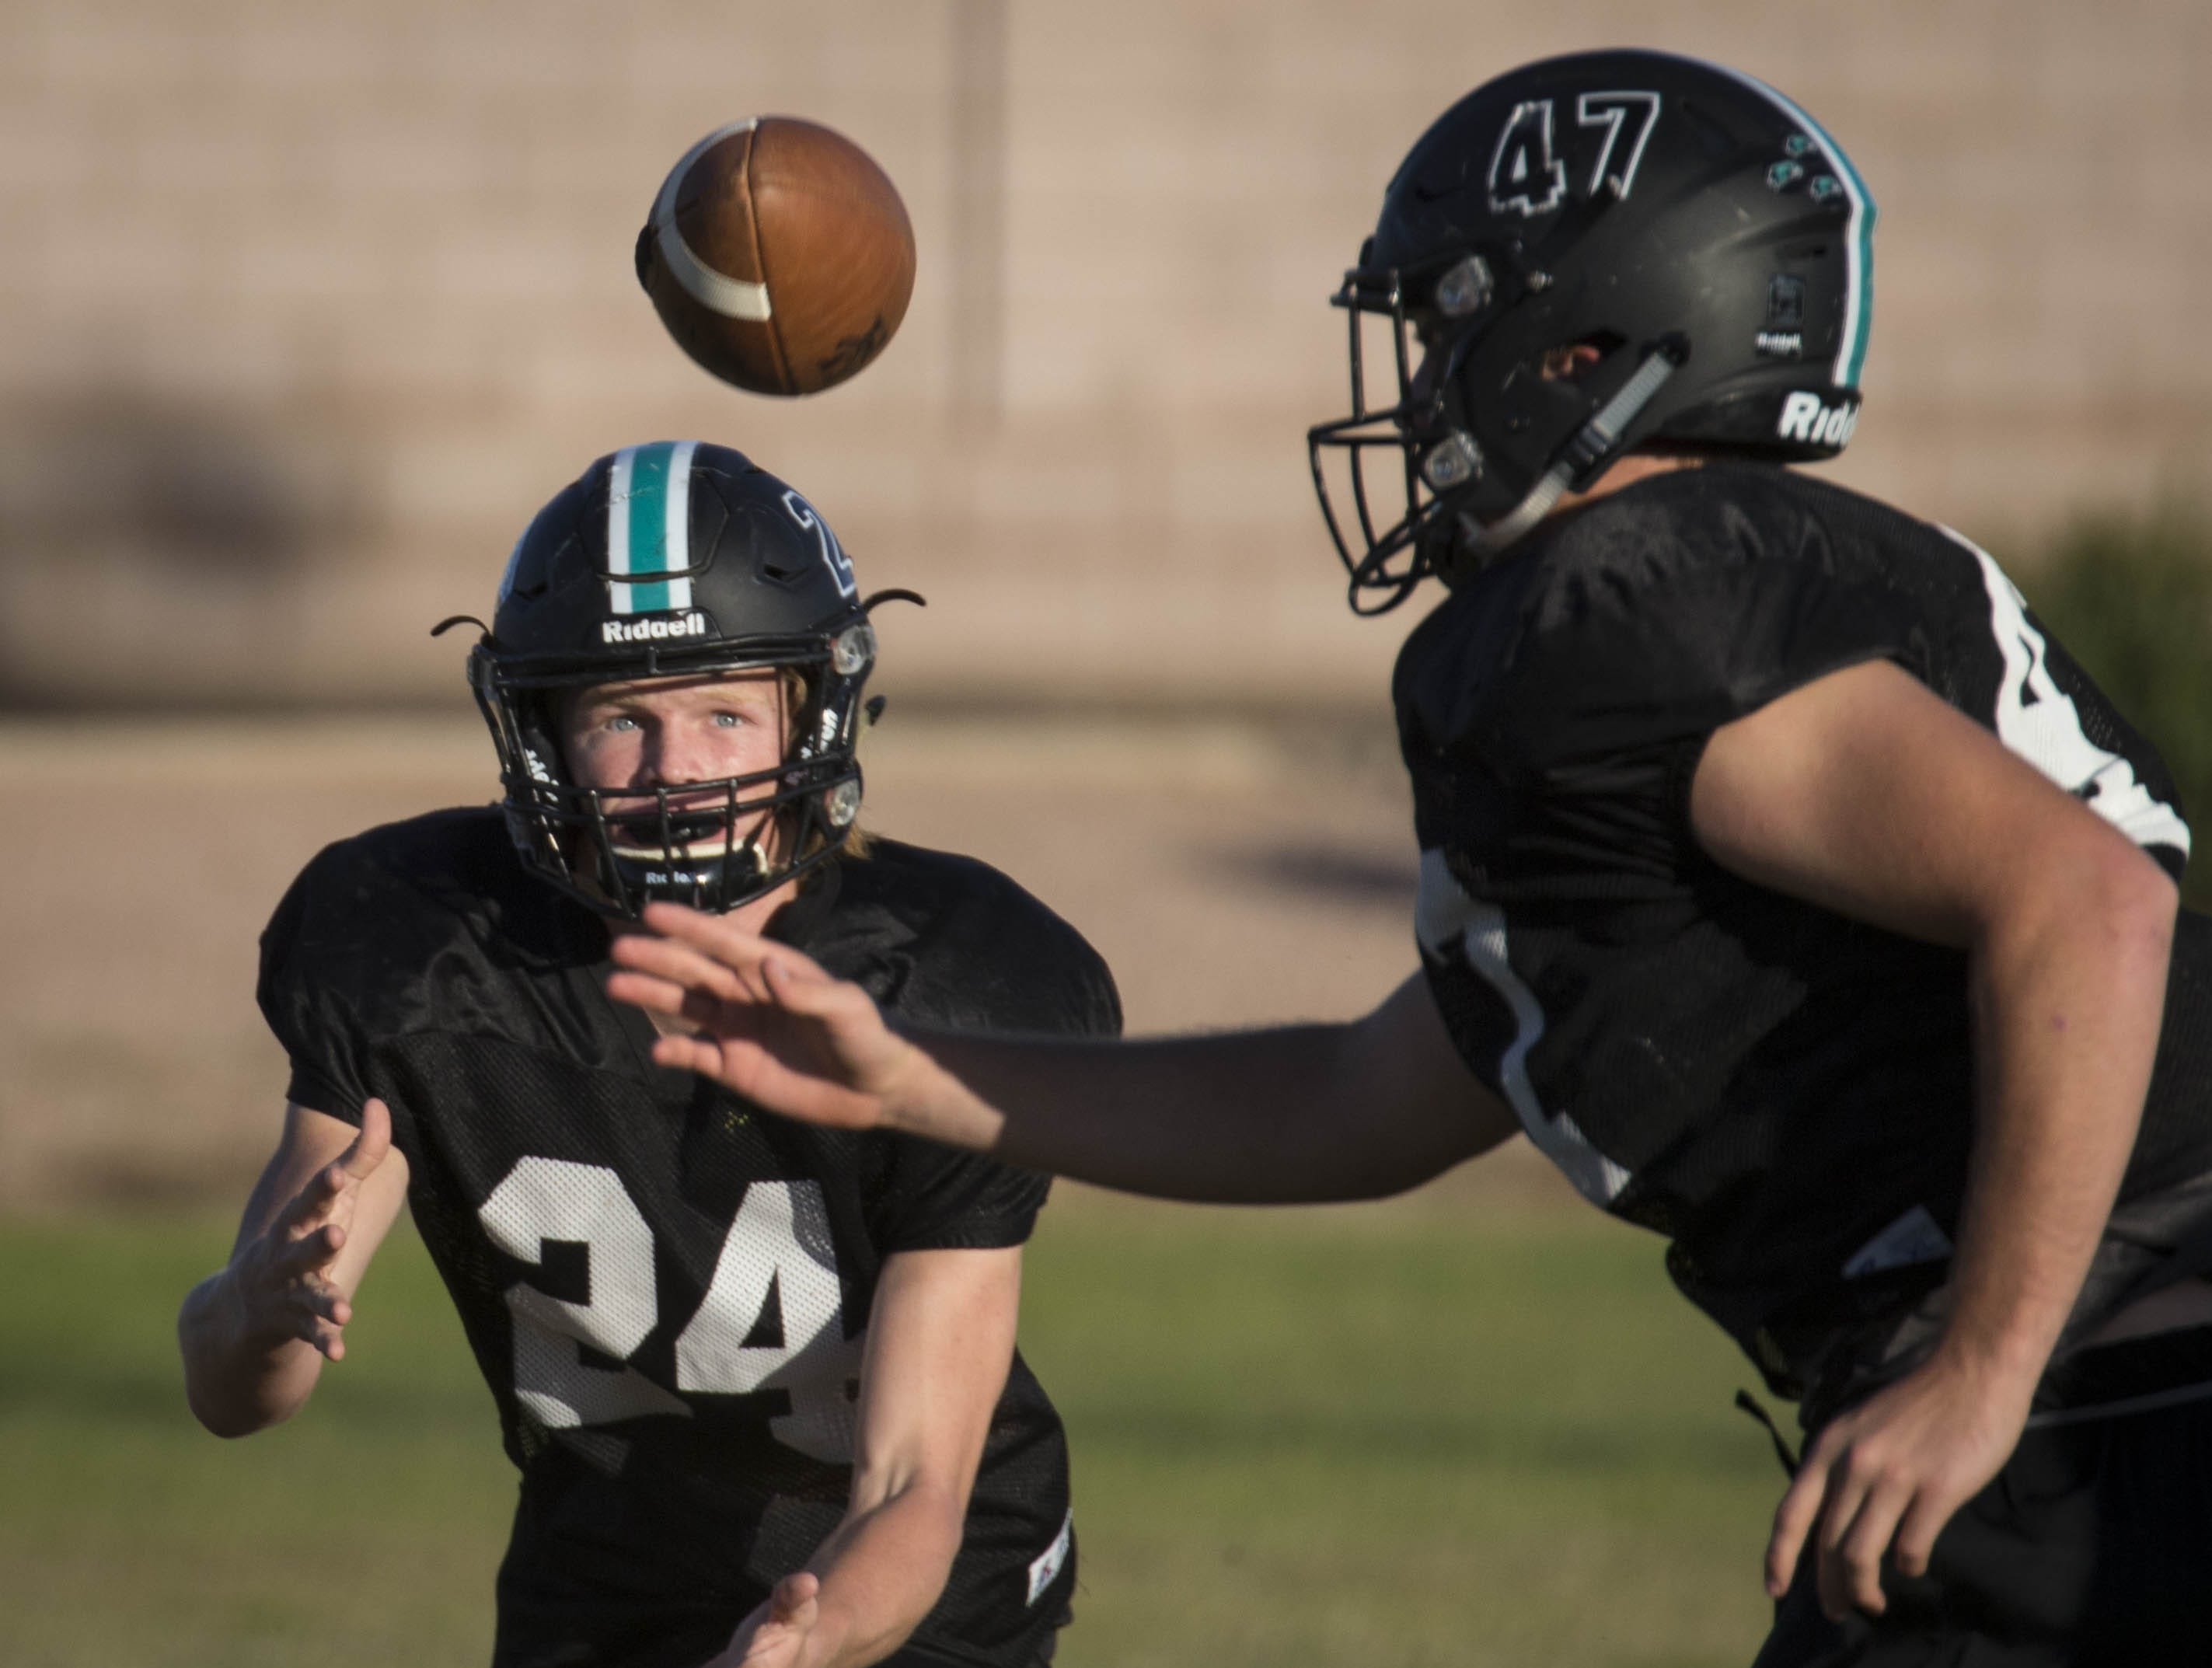 Cade Camac intercepts a pass during football practice, October 17, 2018, at Highland High School, Gilbert.